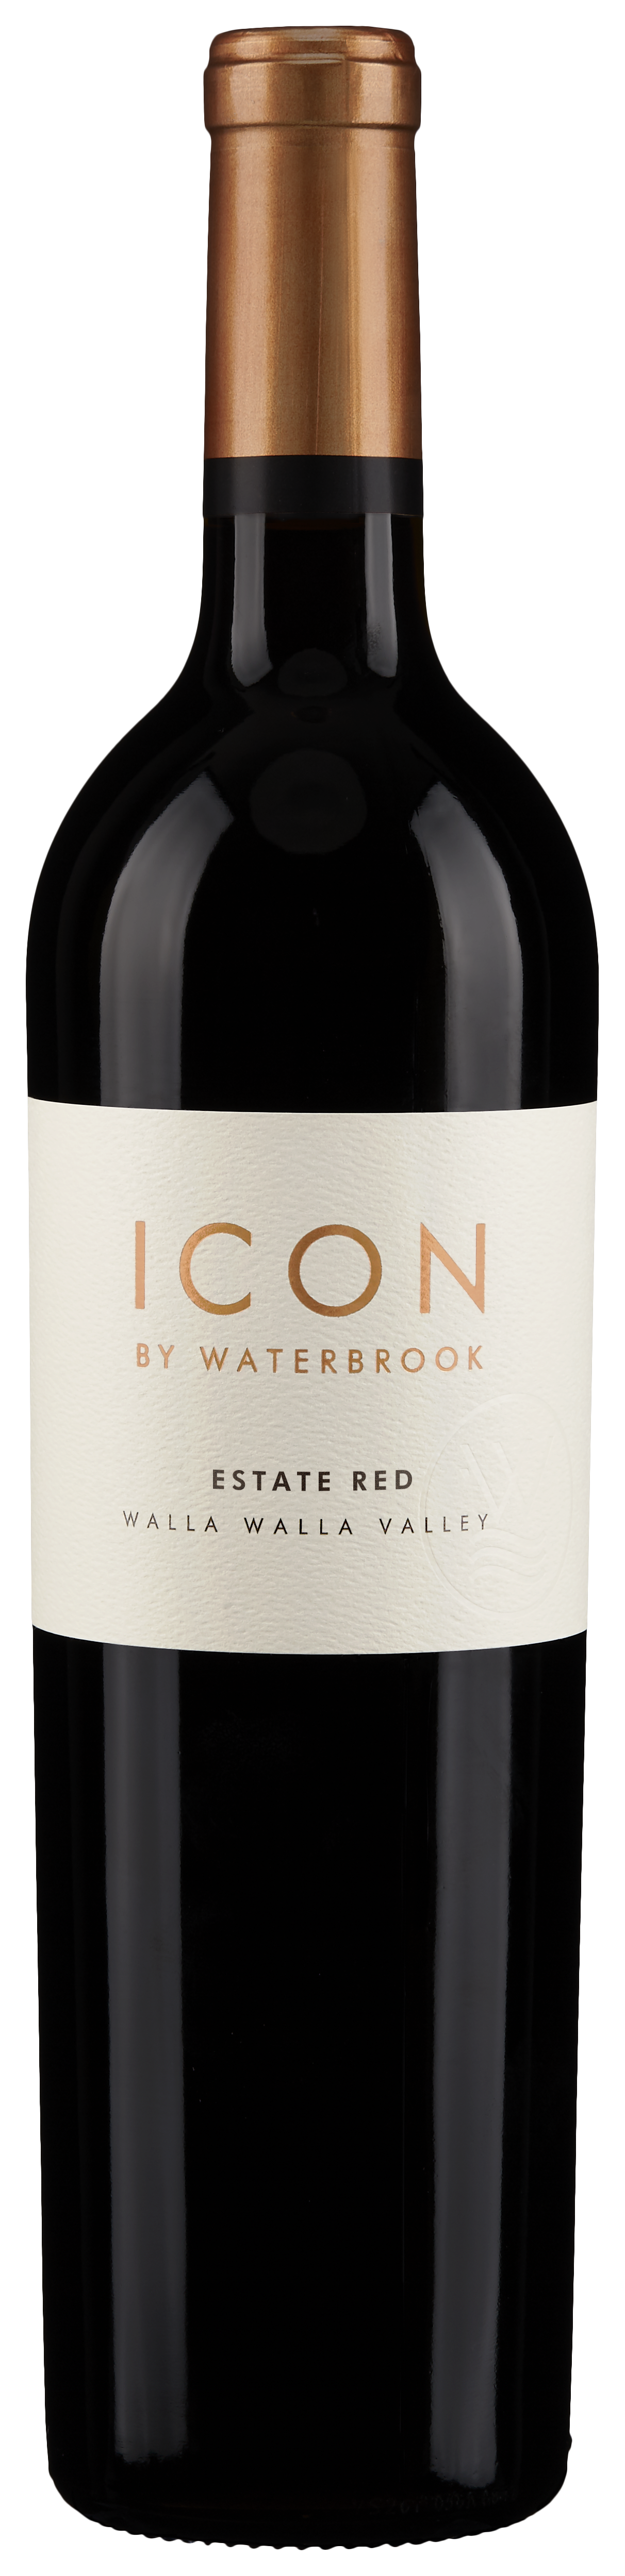 Waterbrook 2012 Icon Red Blend (case)